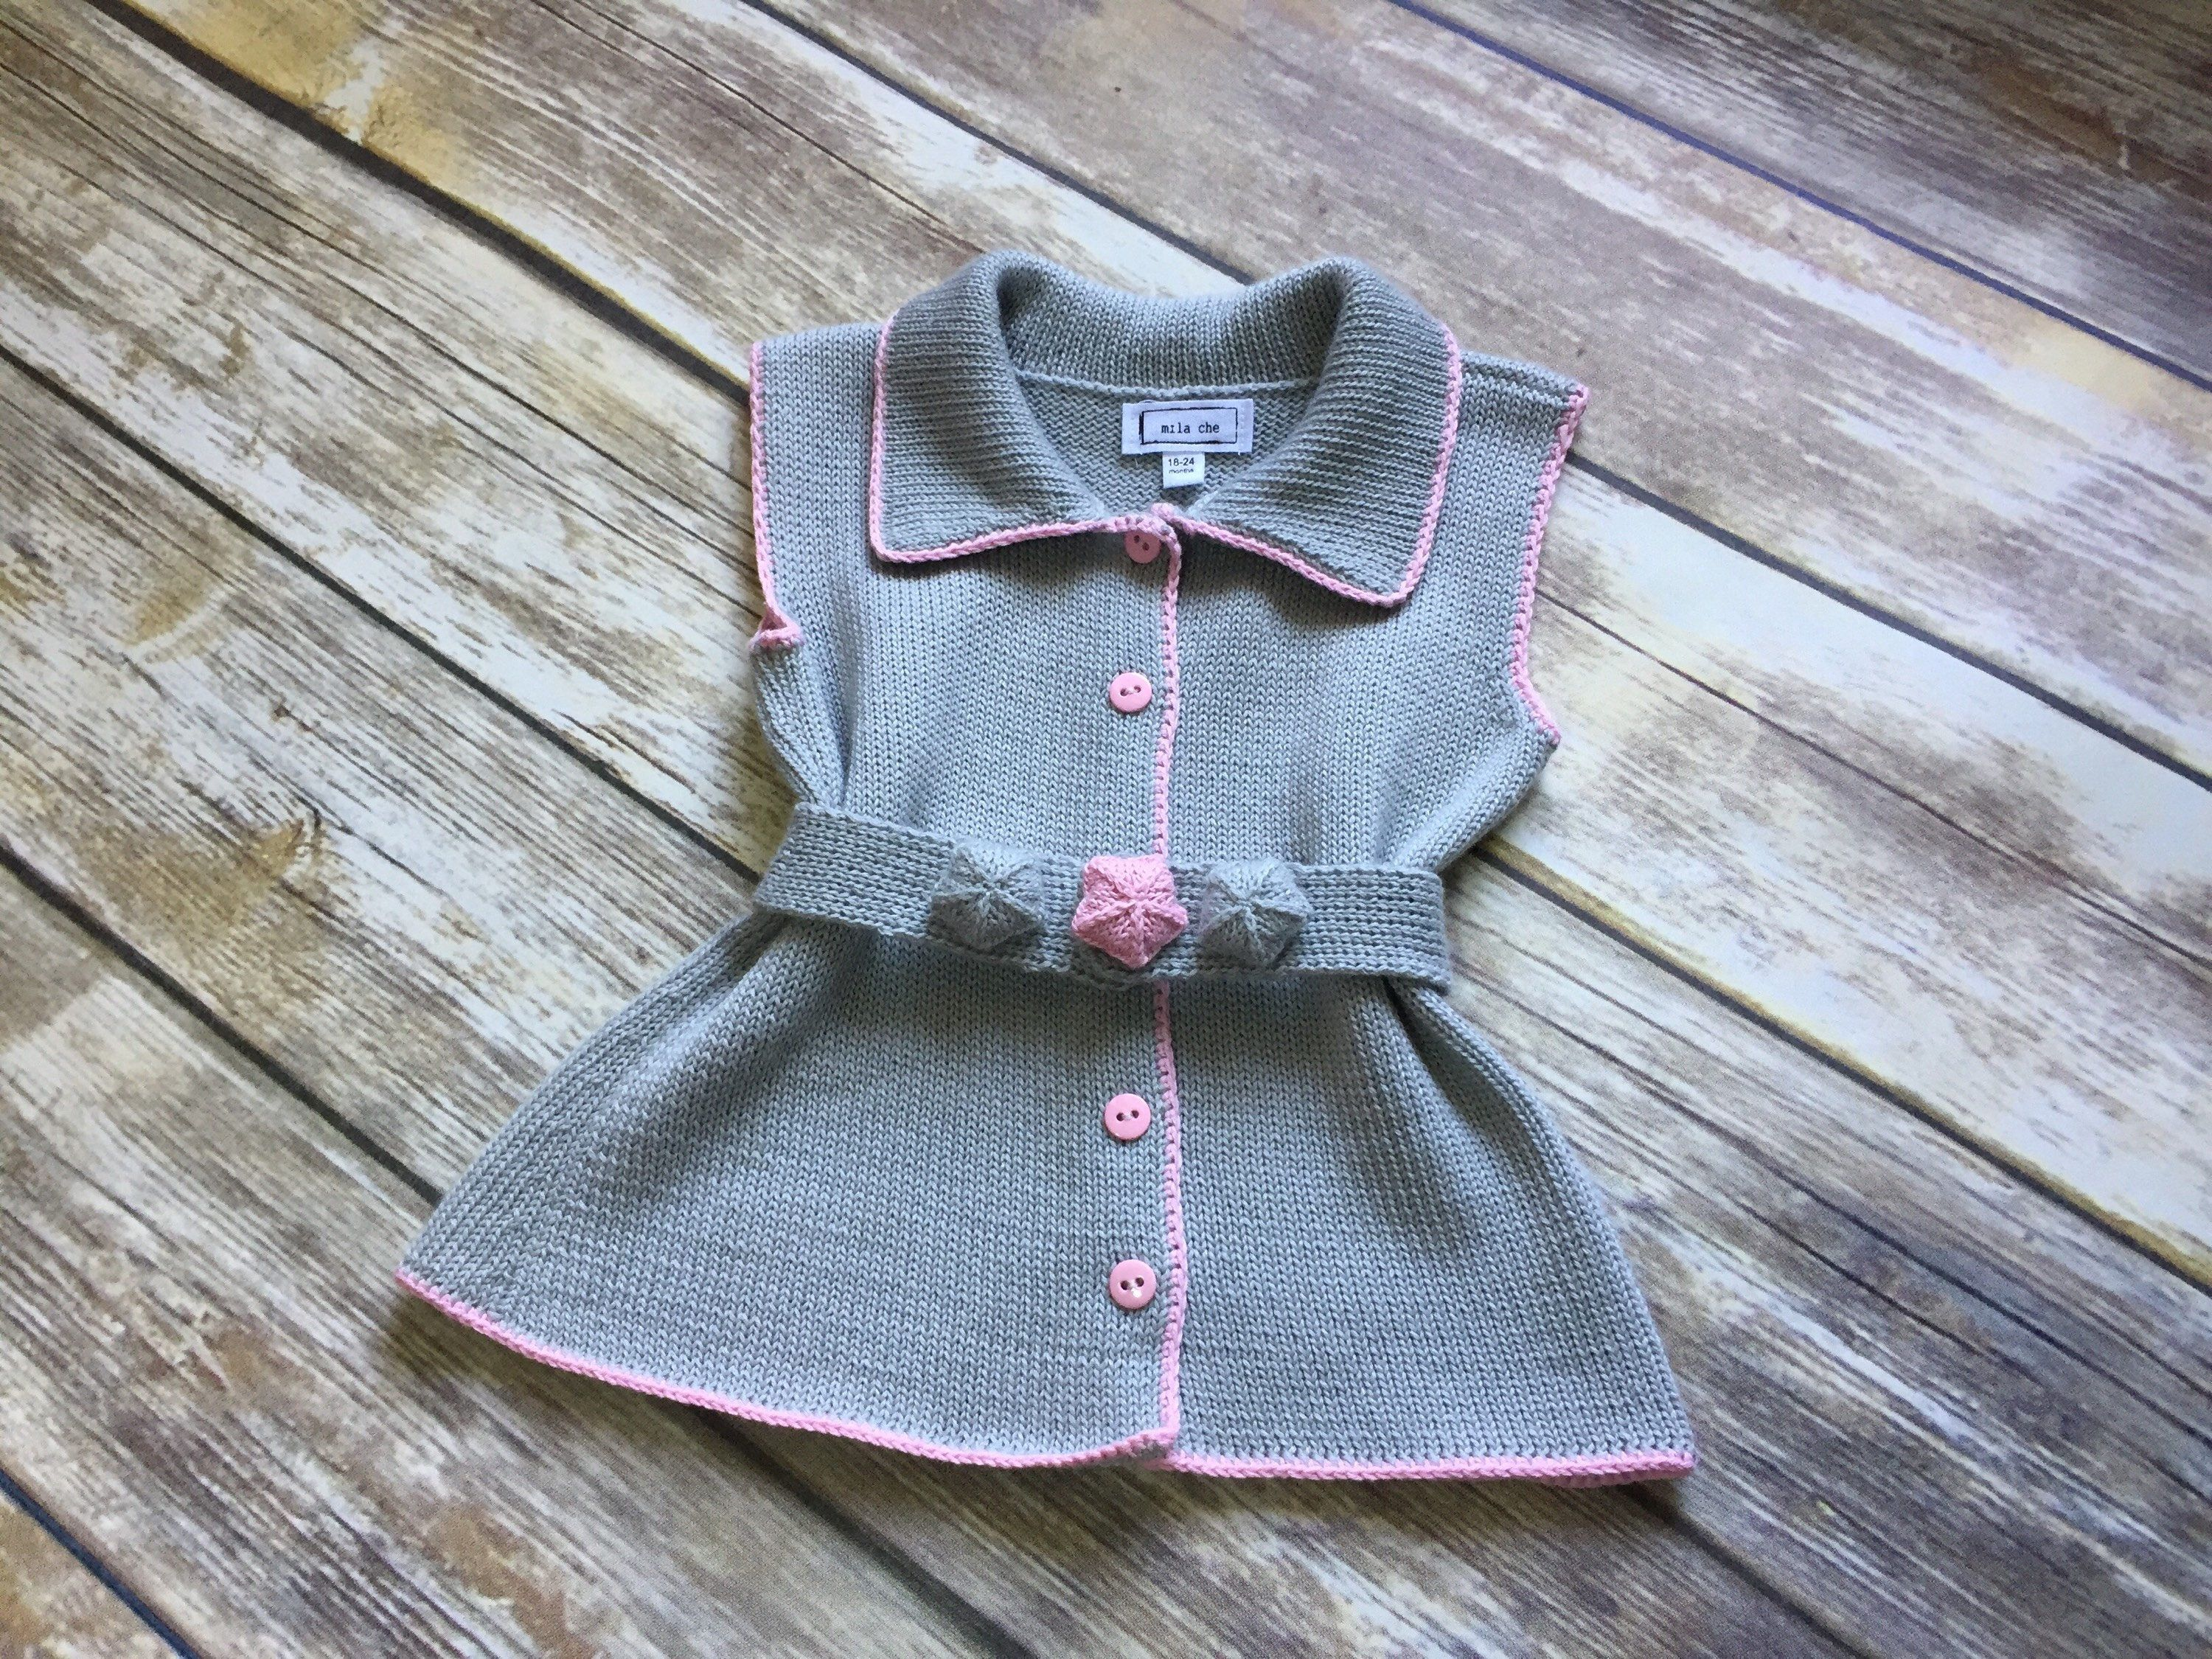 Mila Che knitwear Baby knitwear Baby clothes Baby cashmere Baby hats